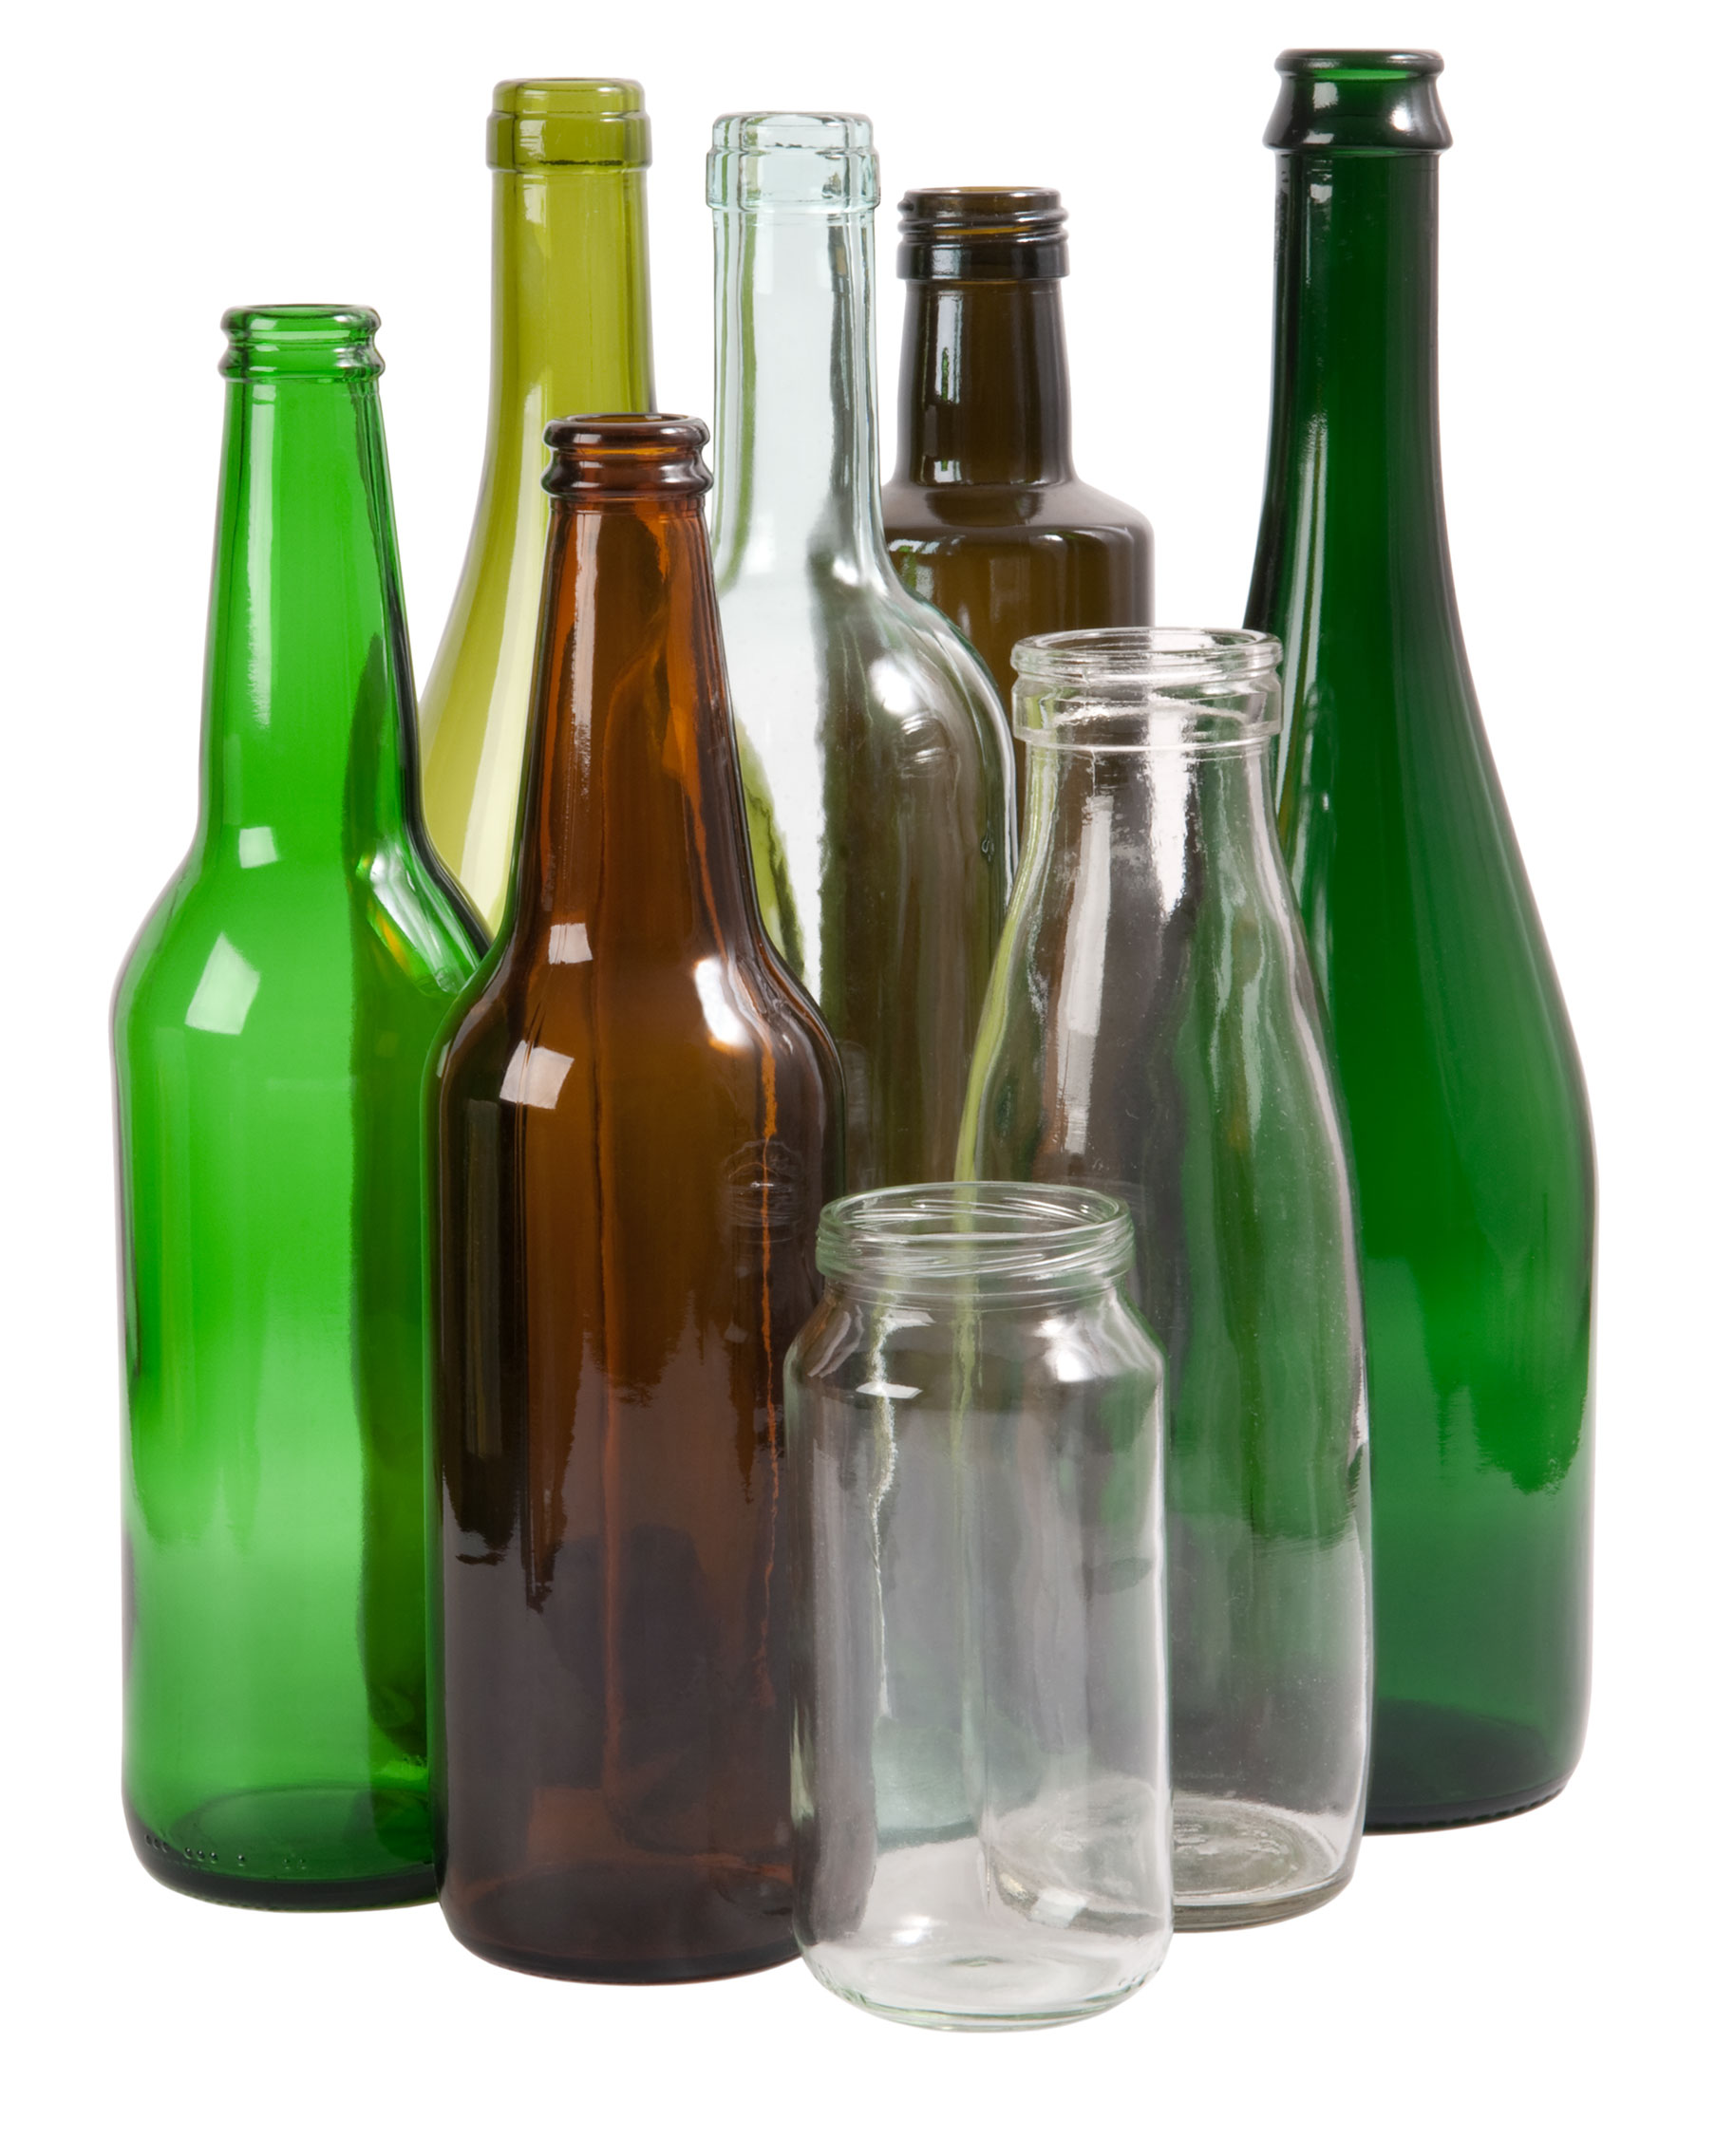 co-mingled recycling curbside pick-up glass bottles